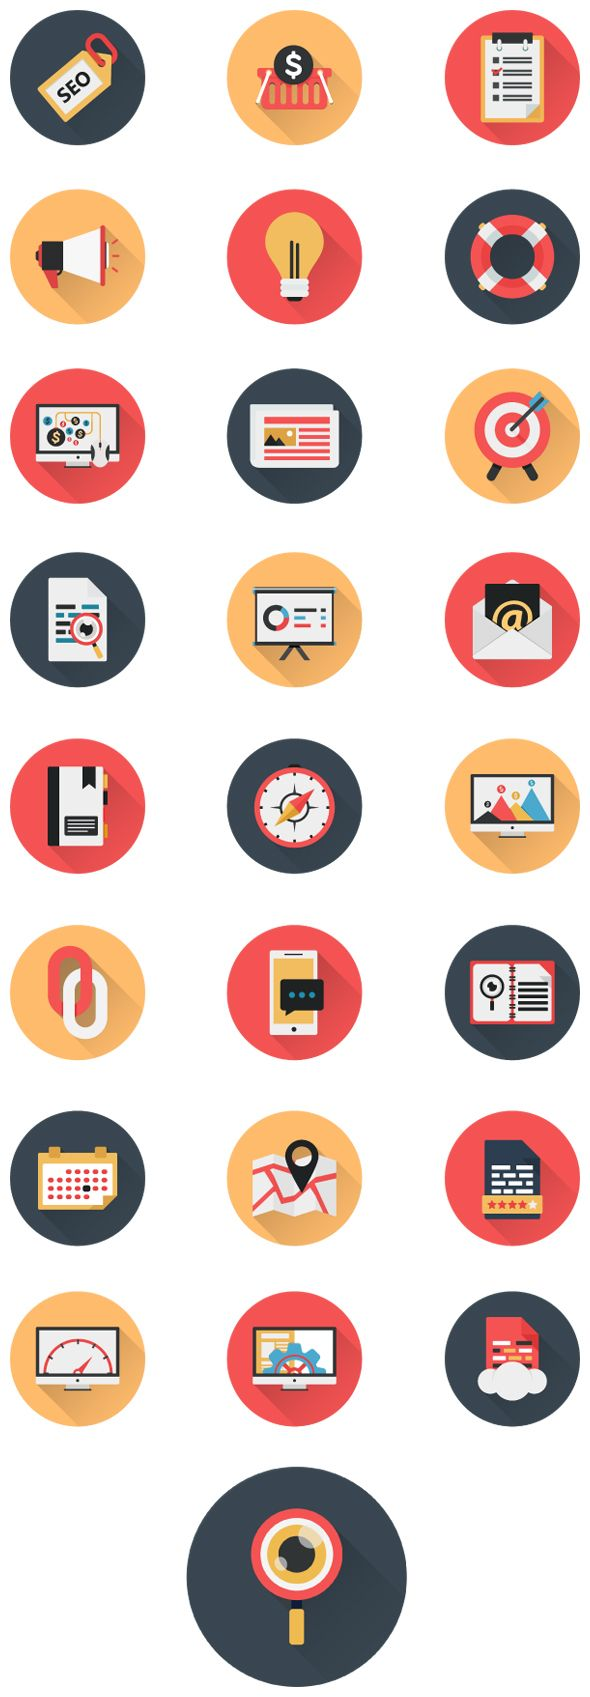 Business Icons and Web Icons Set - Flat Icons.Flat icons design modern vector illustration set of various business , seo , web service items, web and technology development, business management symbol, marketing items and office equipment.Archive includ…